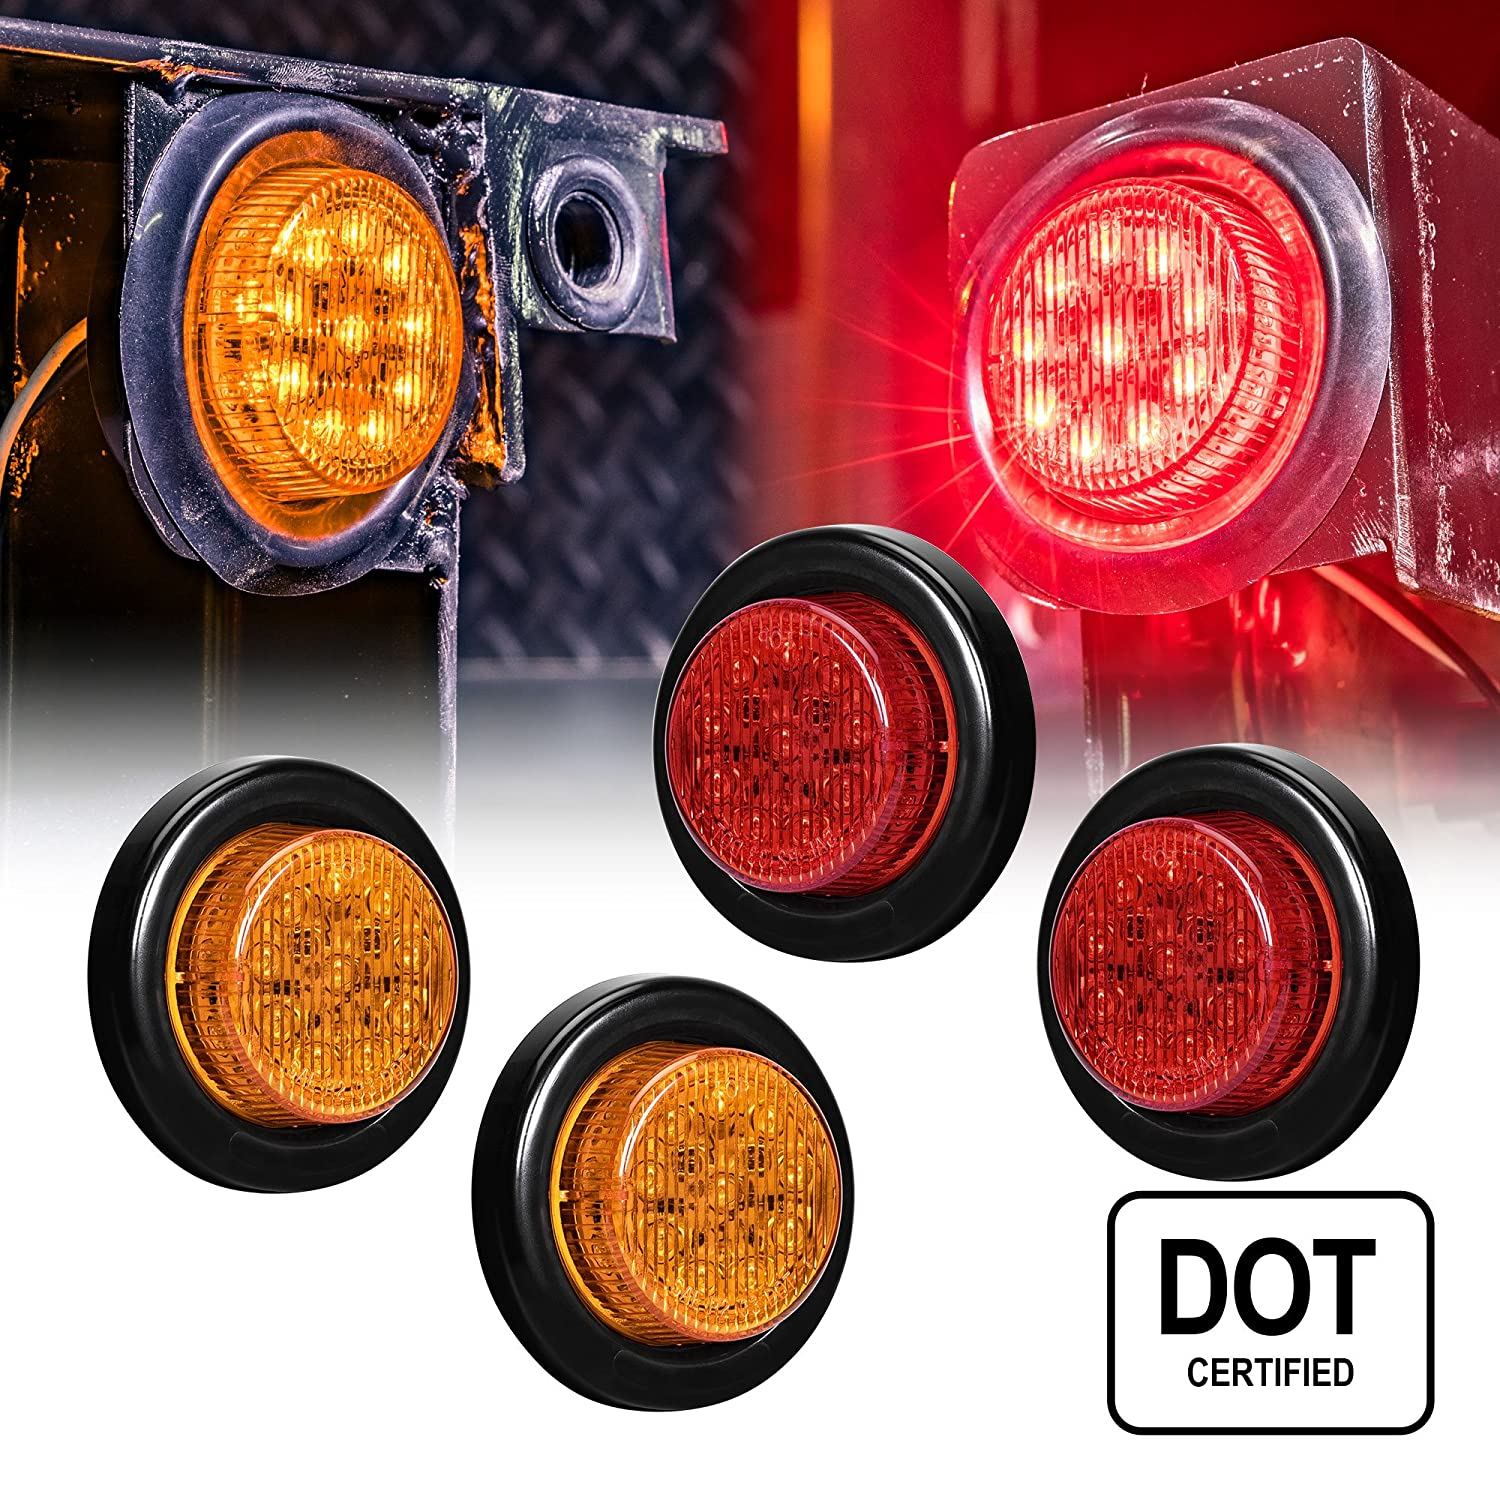 2 PC 2' Round LED Light Side Marker - Two in One Reflector Light [Polycarbonate Reflector] [10 LEDs] [Rubber Grommet] [IP 67] for Trailers - 1 Red and 1 Amber ONLINE LED STORE